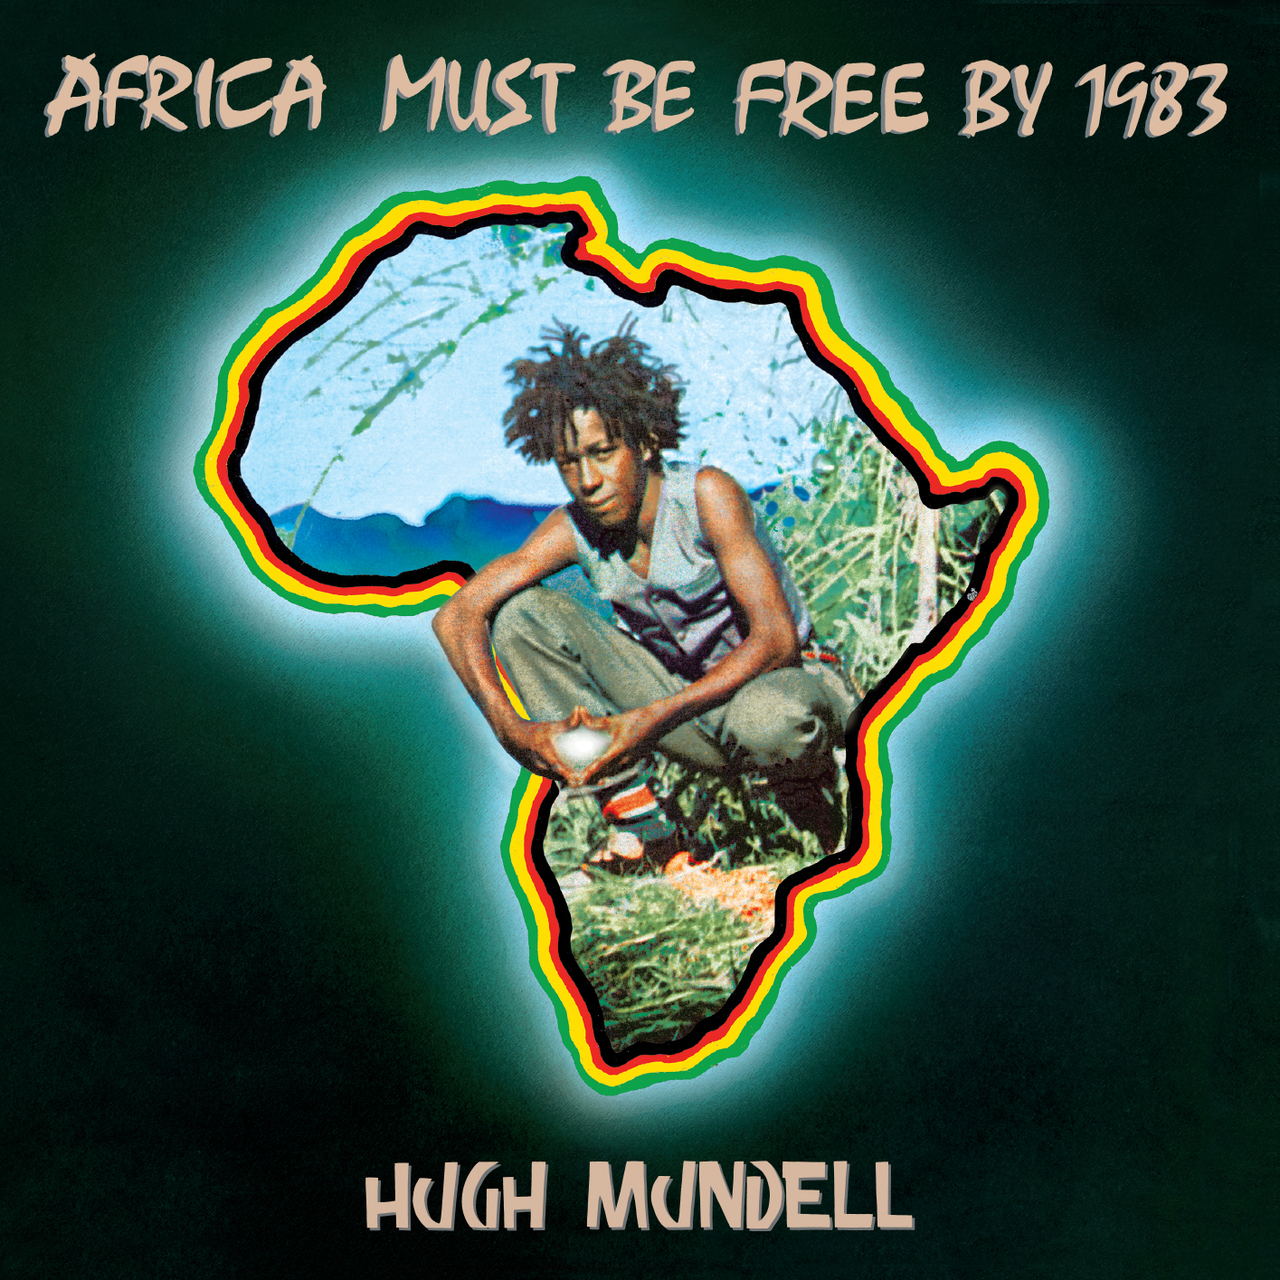 Africa Must Be Free By 1983 – Hugh Mundell